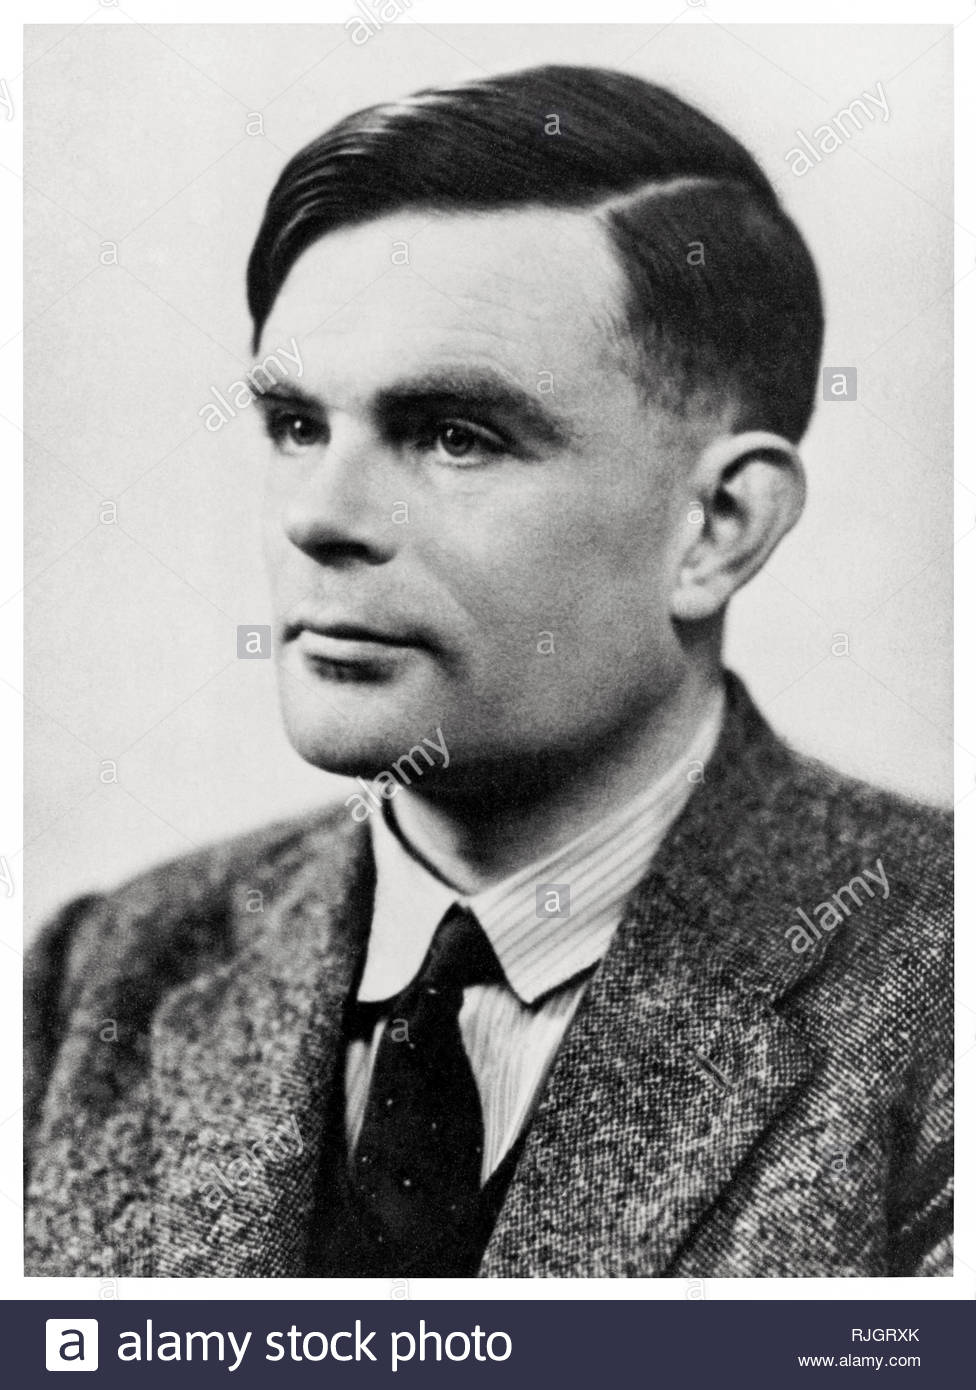 Alan Turing (1912-1954) circa 1947. British mathematician and genius, inventor of the Turing machine, best remembered for the leading role he played in codebreaking the Nazi Enigma ciphering system at Bletchley Park during World War 2. Stock Photo